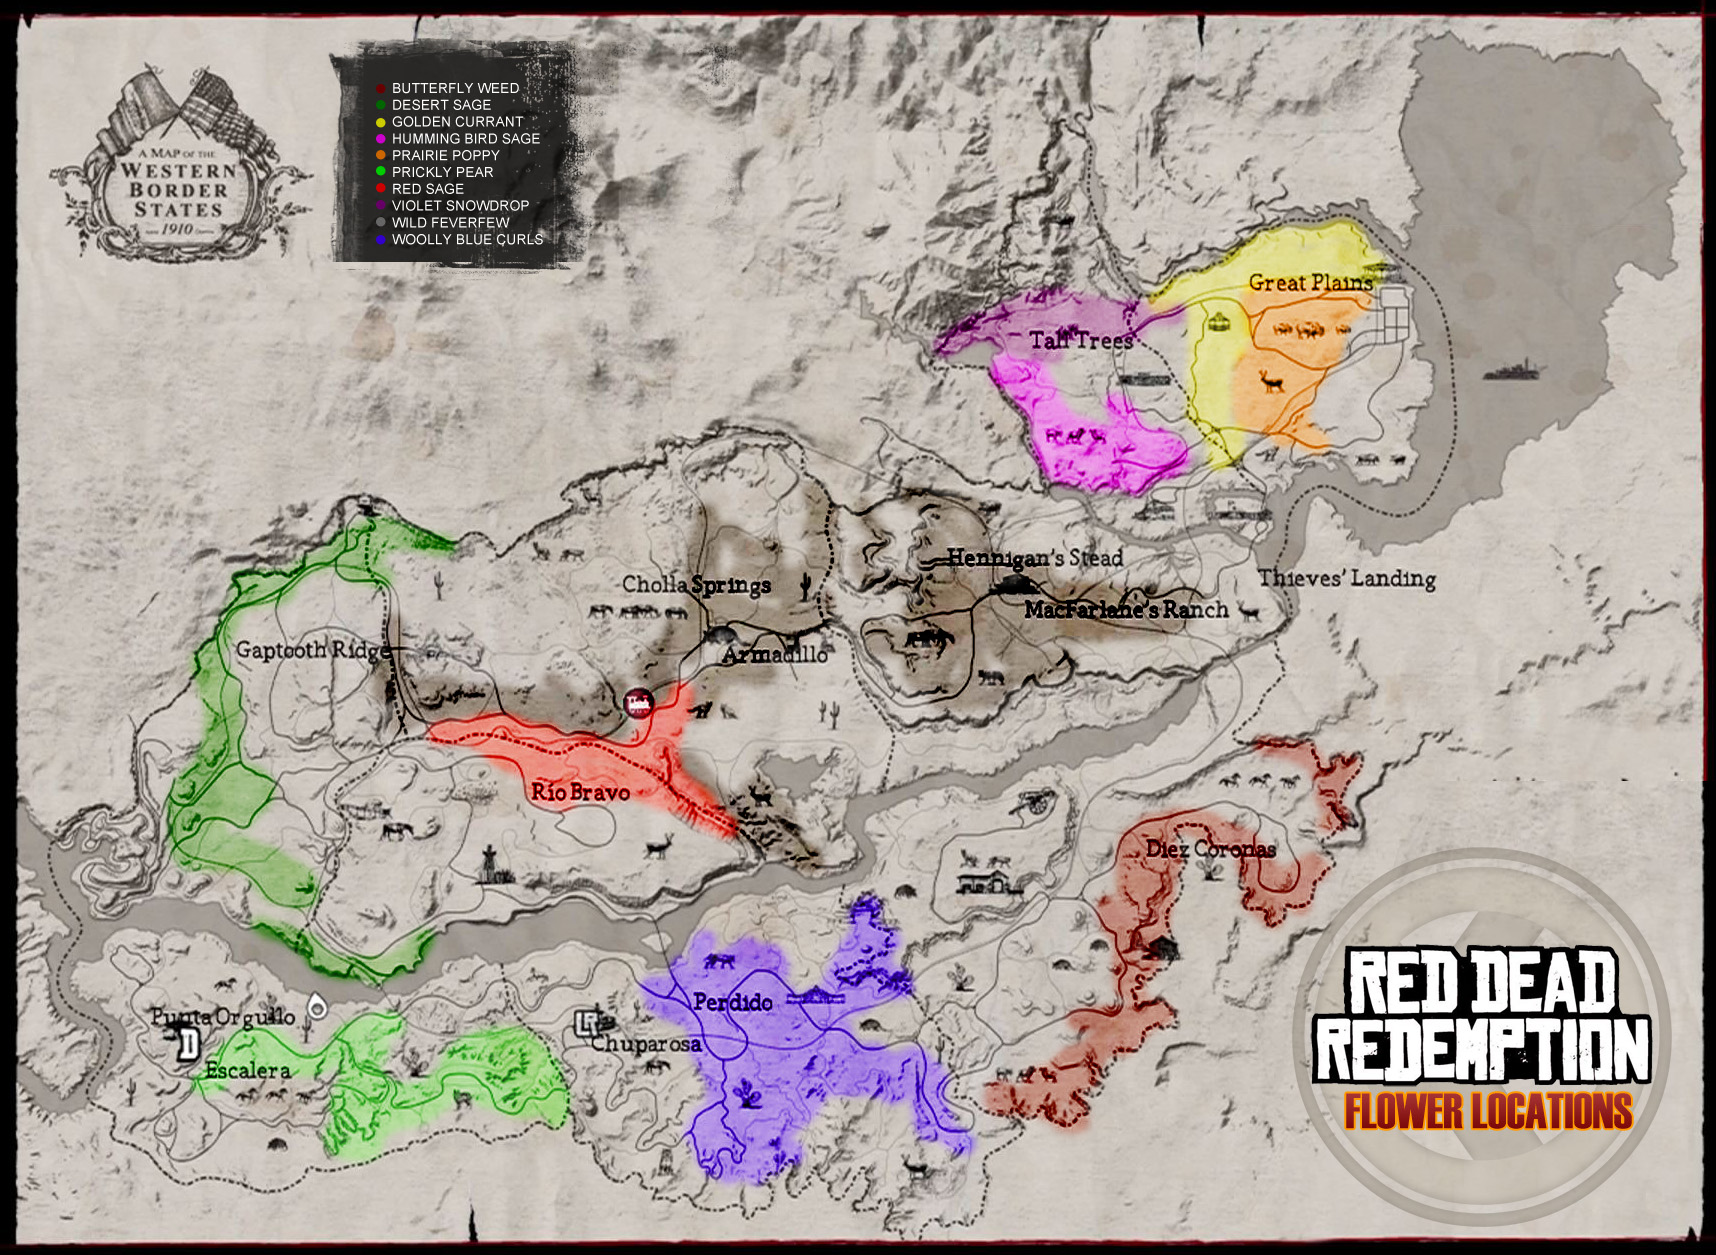 red dead redemption treasure map locations with Red Dead Redemption Gold Locations on Forza Horizon 2 Treasure Map For Bucket List Stunts Reward Boards And Speed Cameras as well Index additionally Watch further Undead Treasure Hunter further 100 Multiplayer Cheats And More.